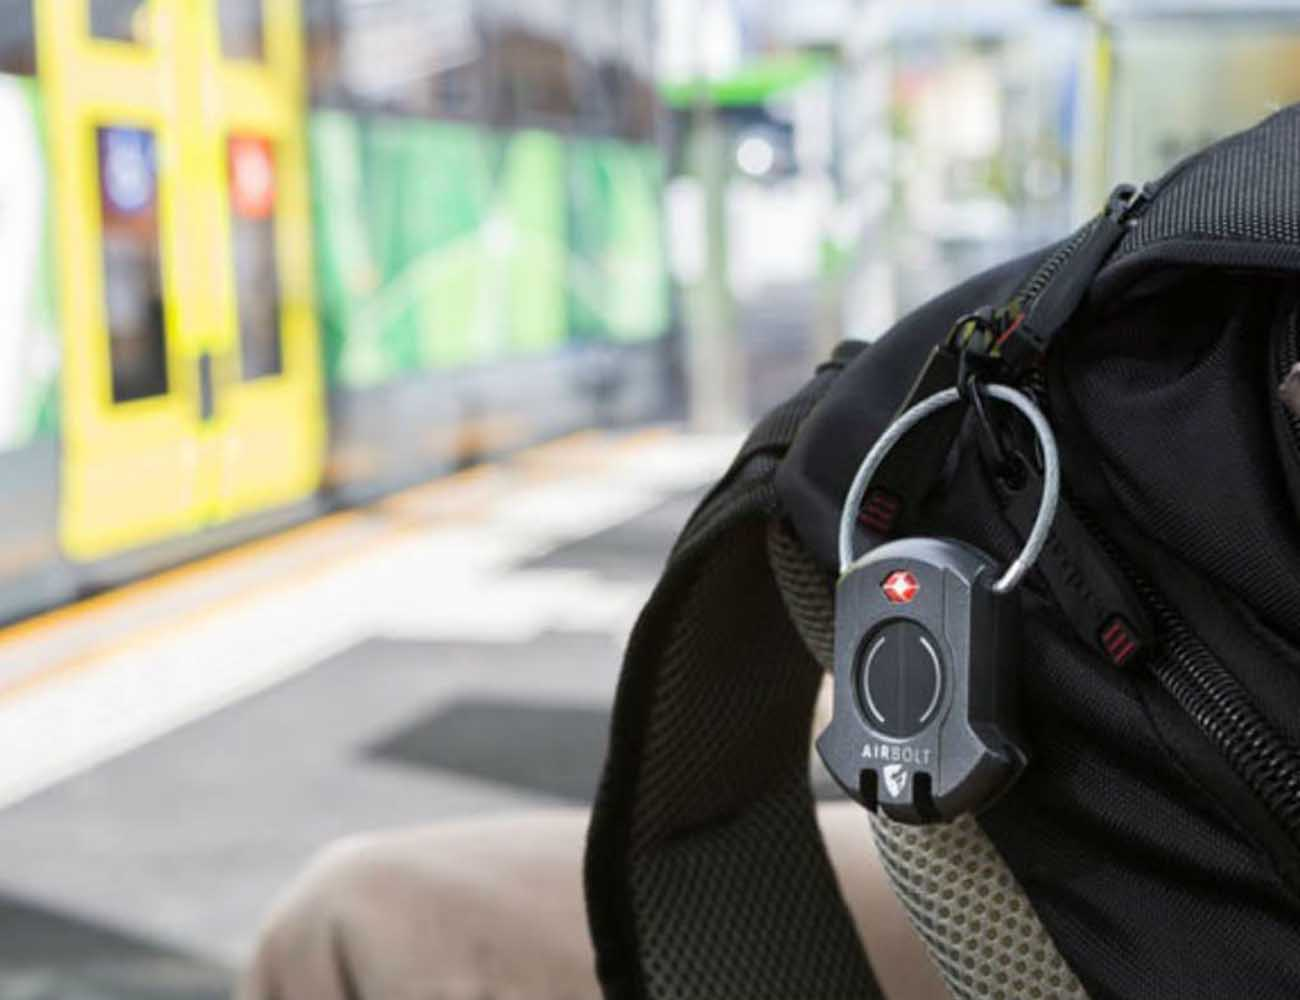 AirBolt – The  Truly Smart Travel Lock